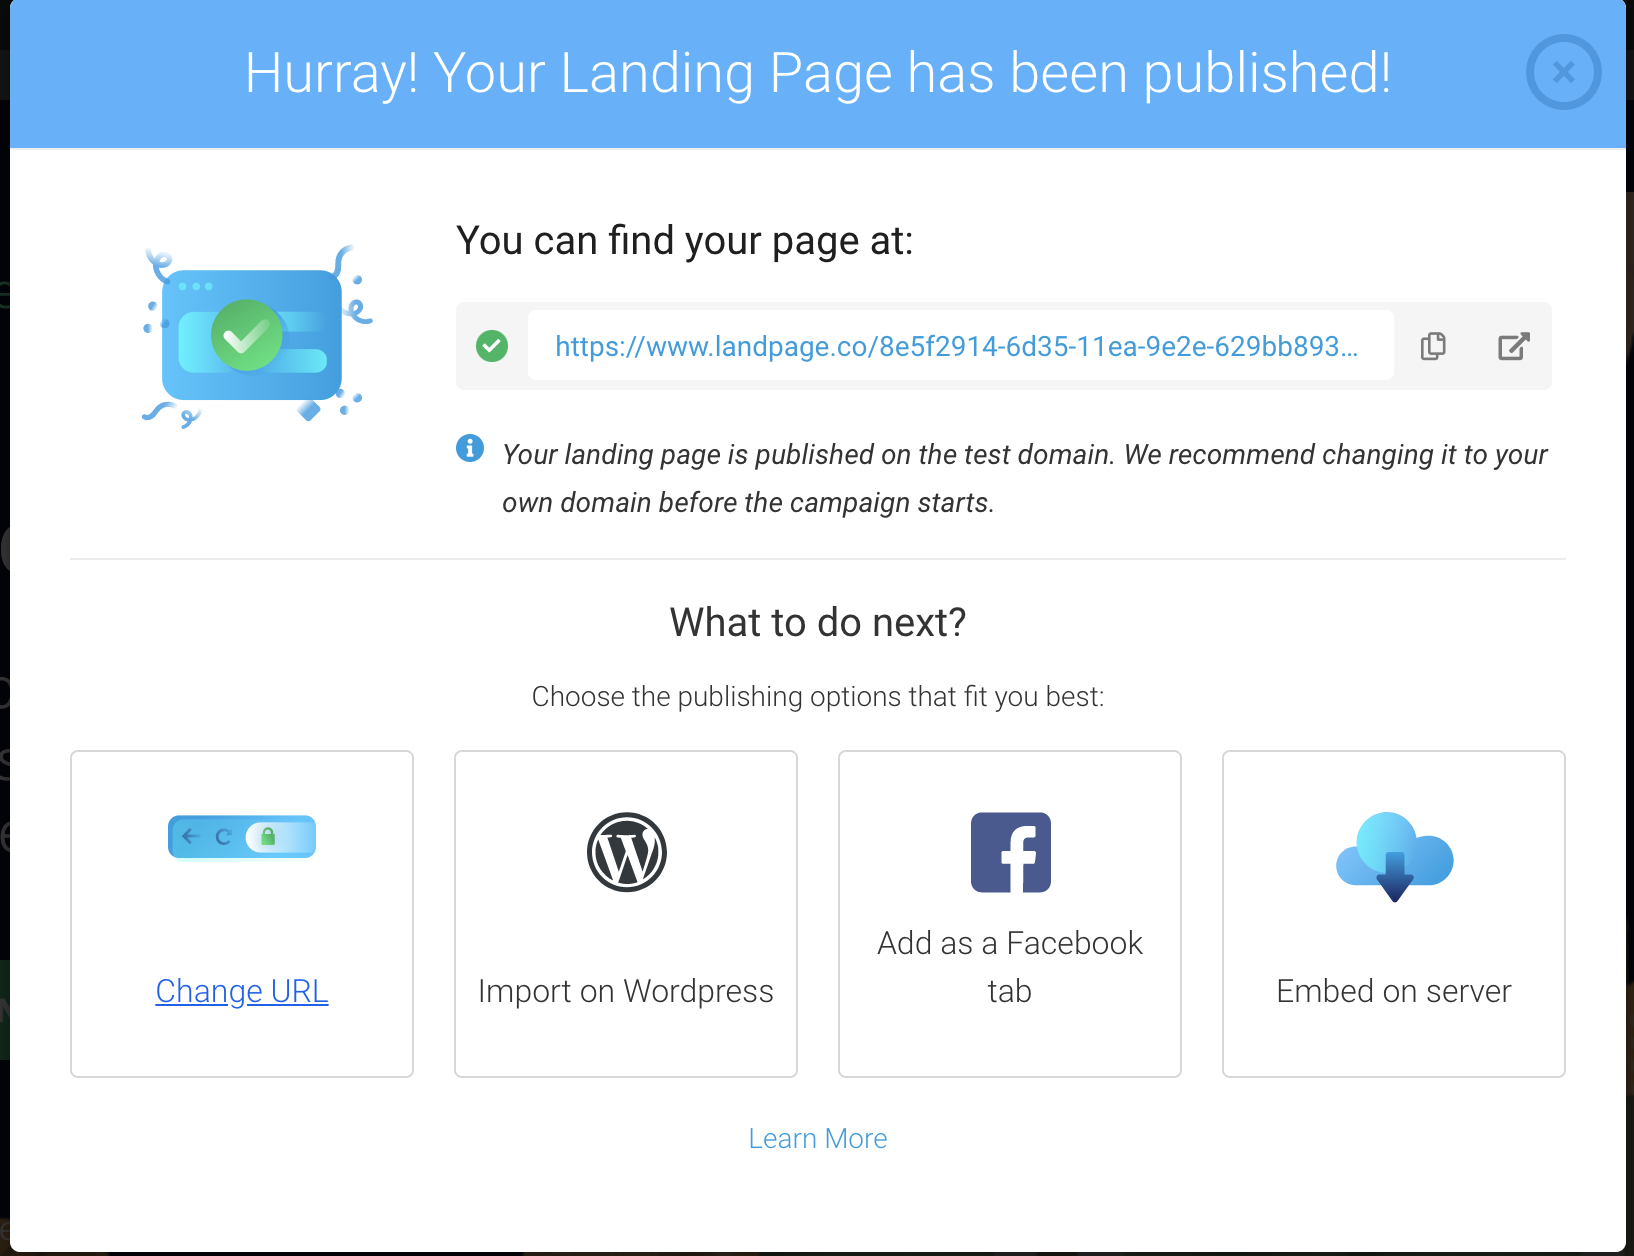 Further options after publication your landing page